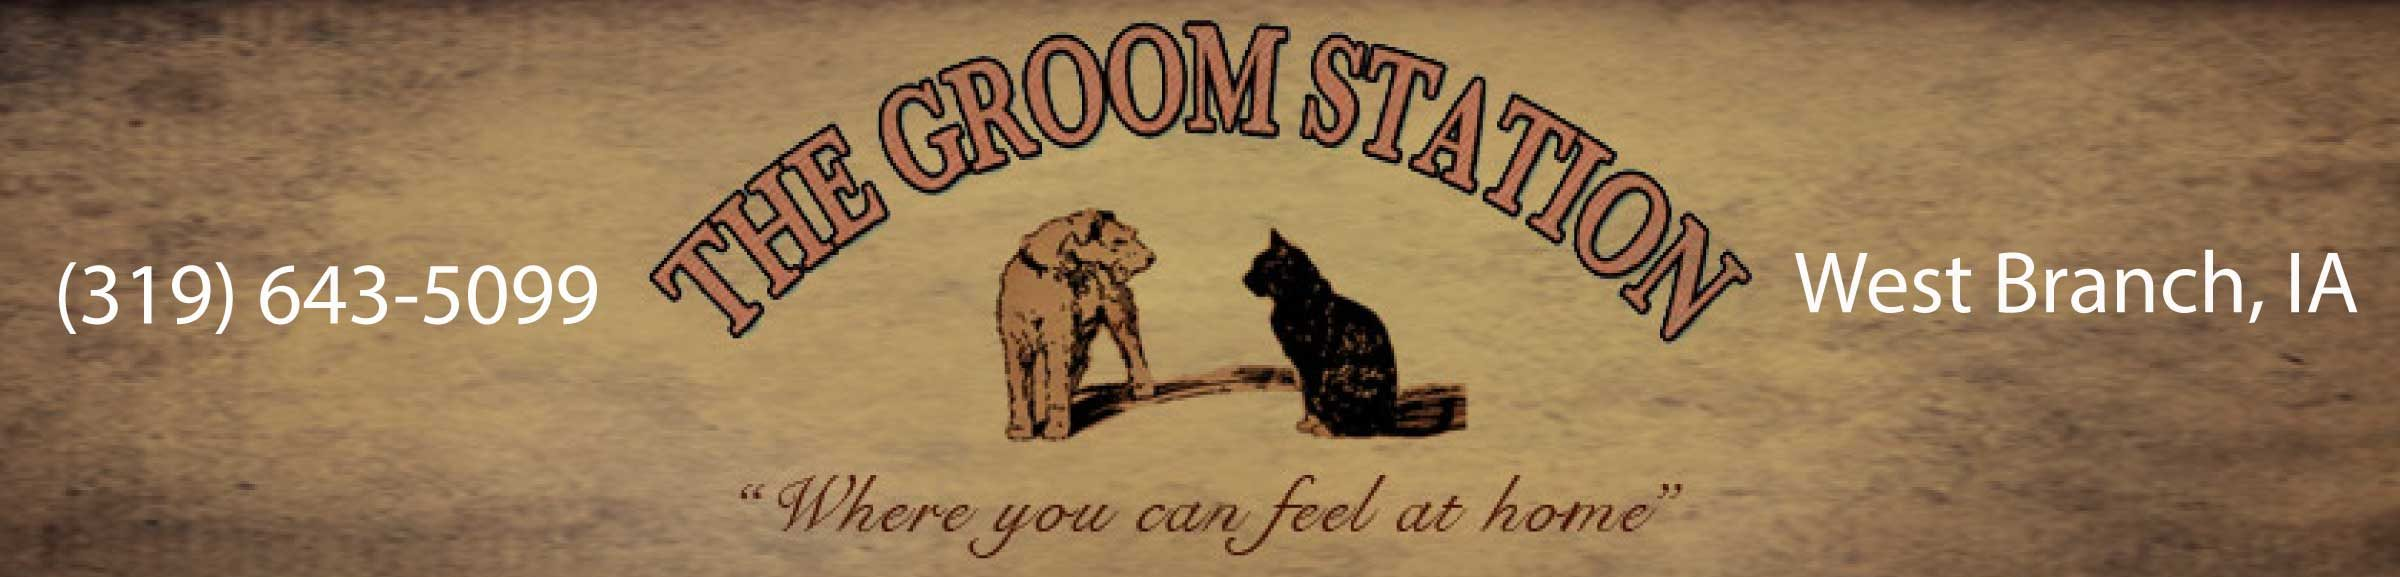 The groom station - full service pet grooming - West Branch, Iowa